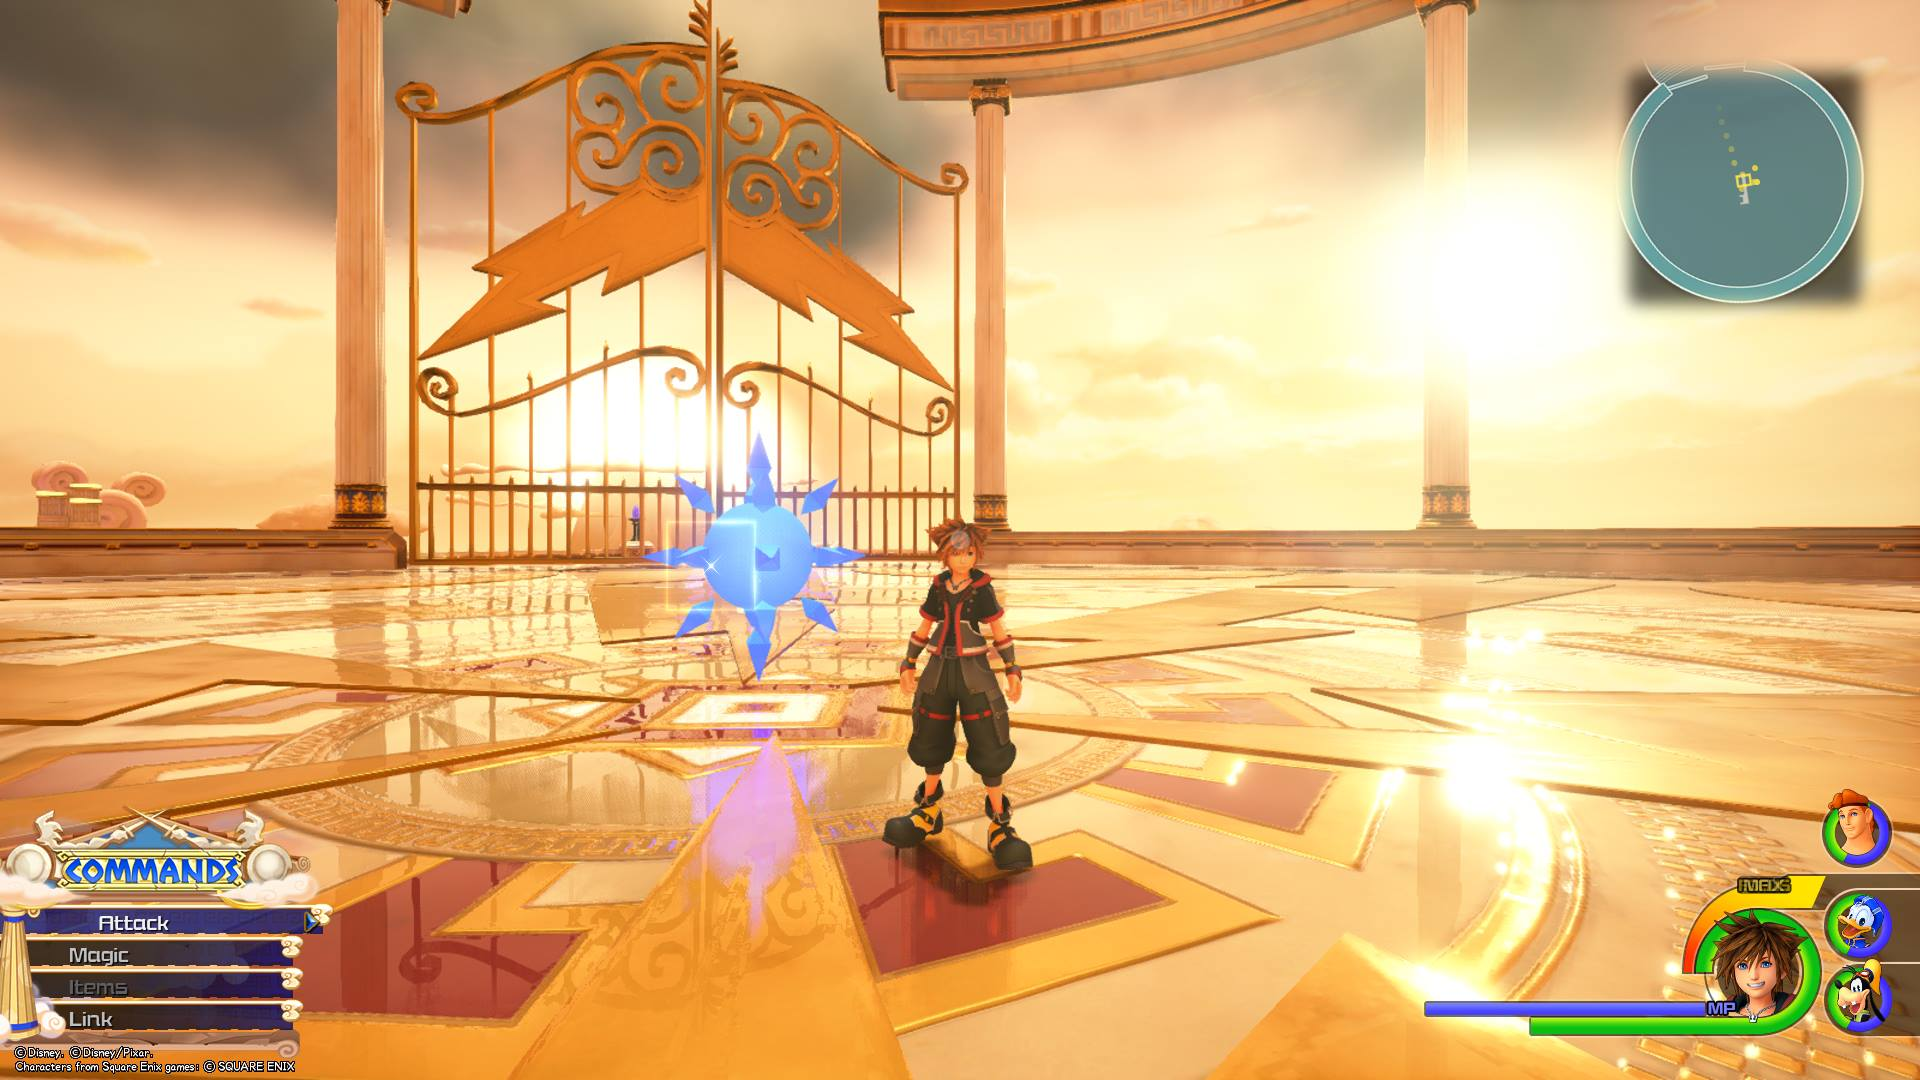 The second Battlegate in Kingdom Hearts 3 is located in the Apex area of Olympus.